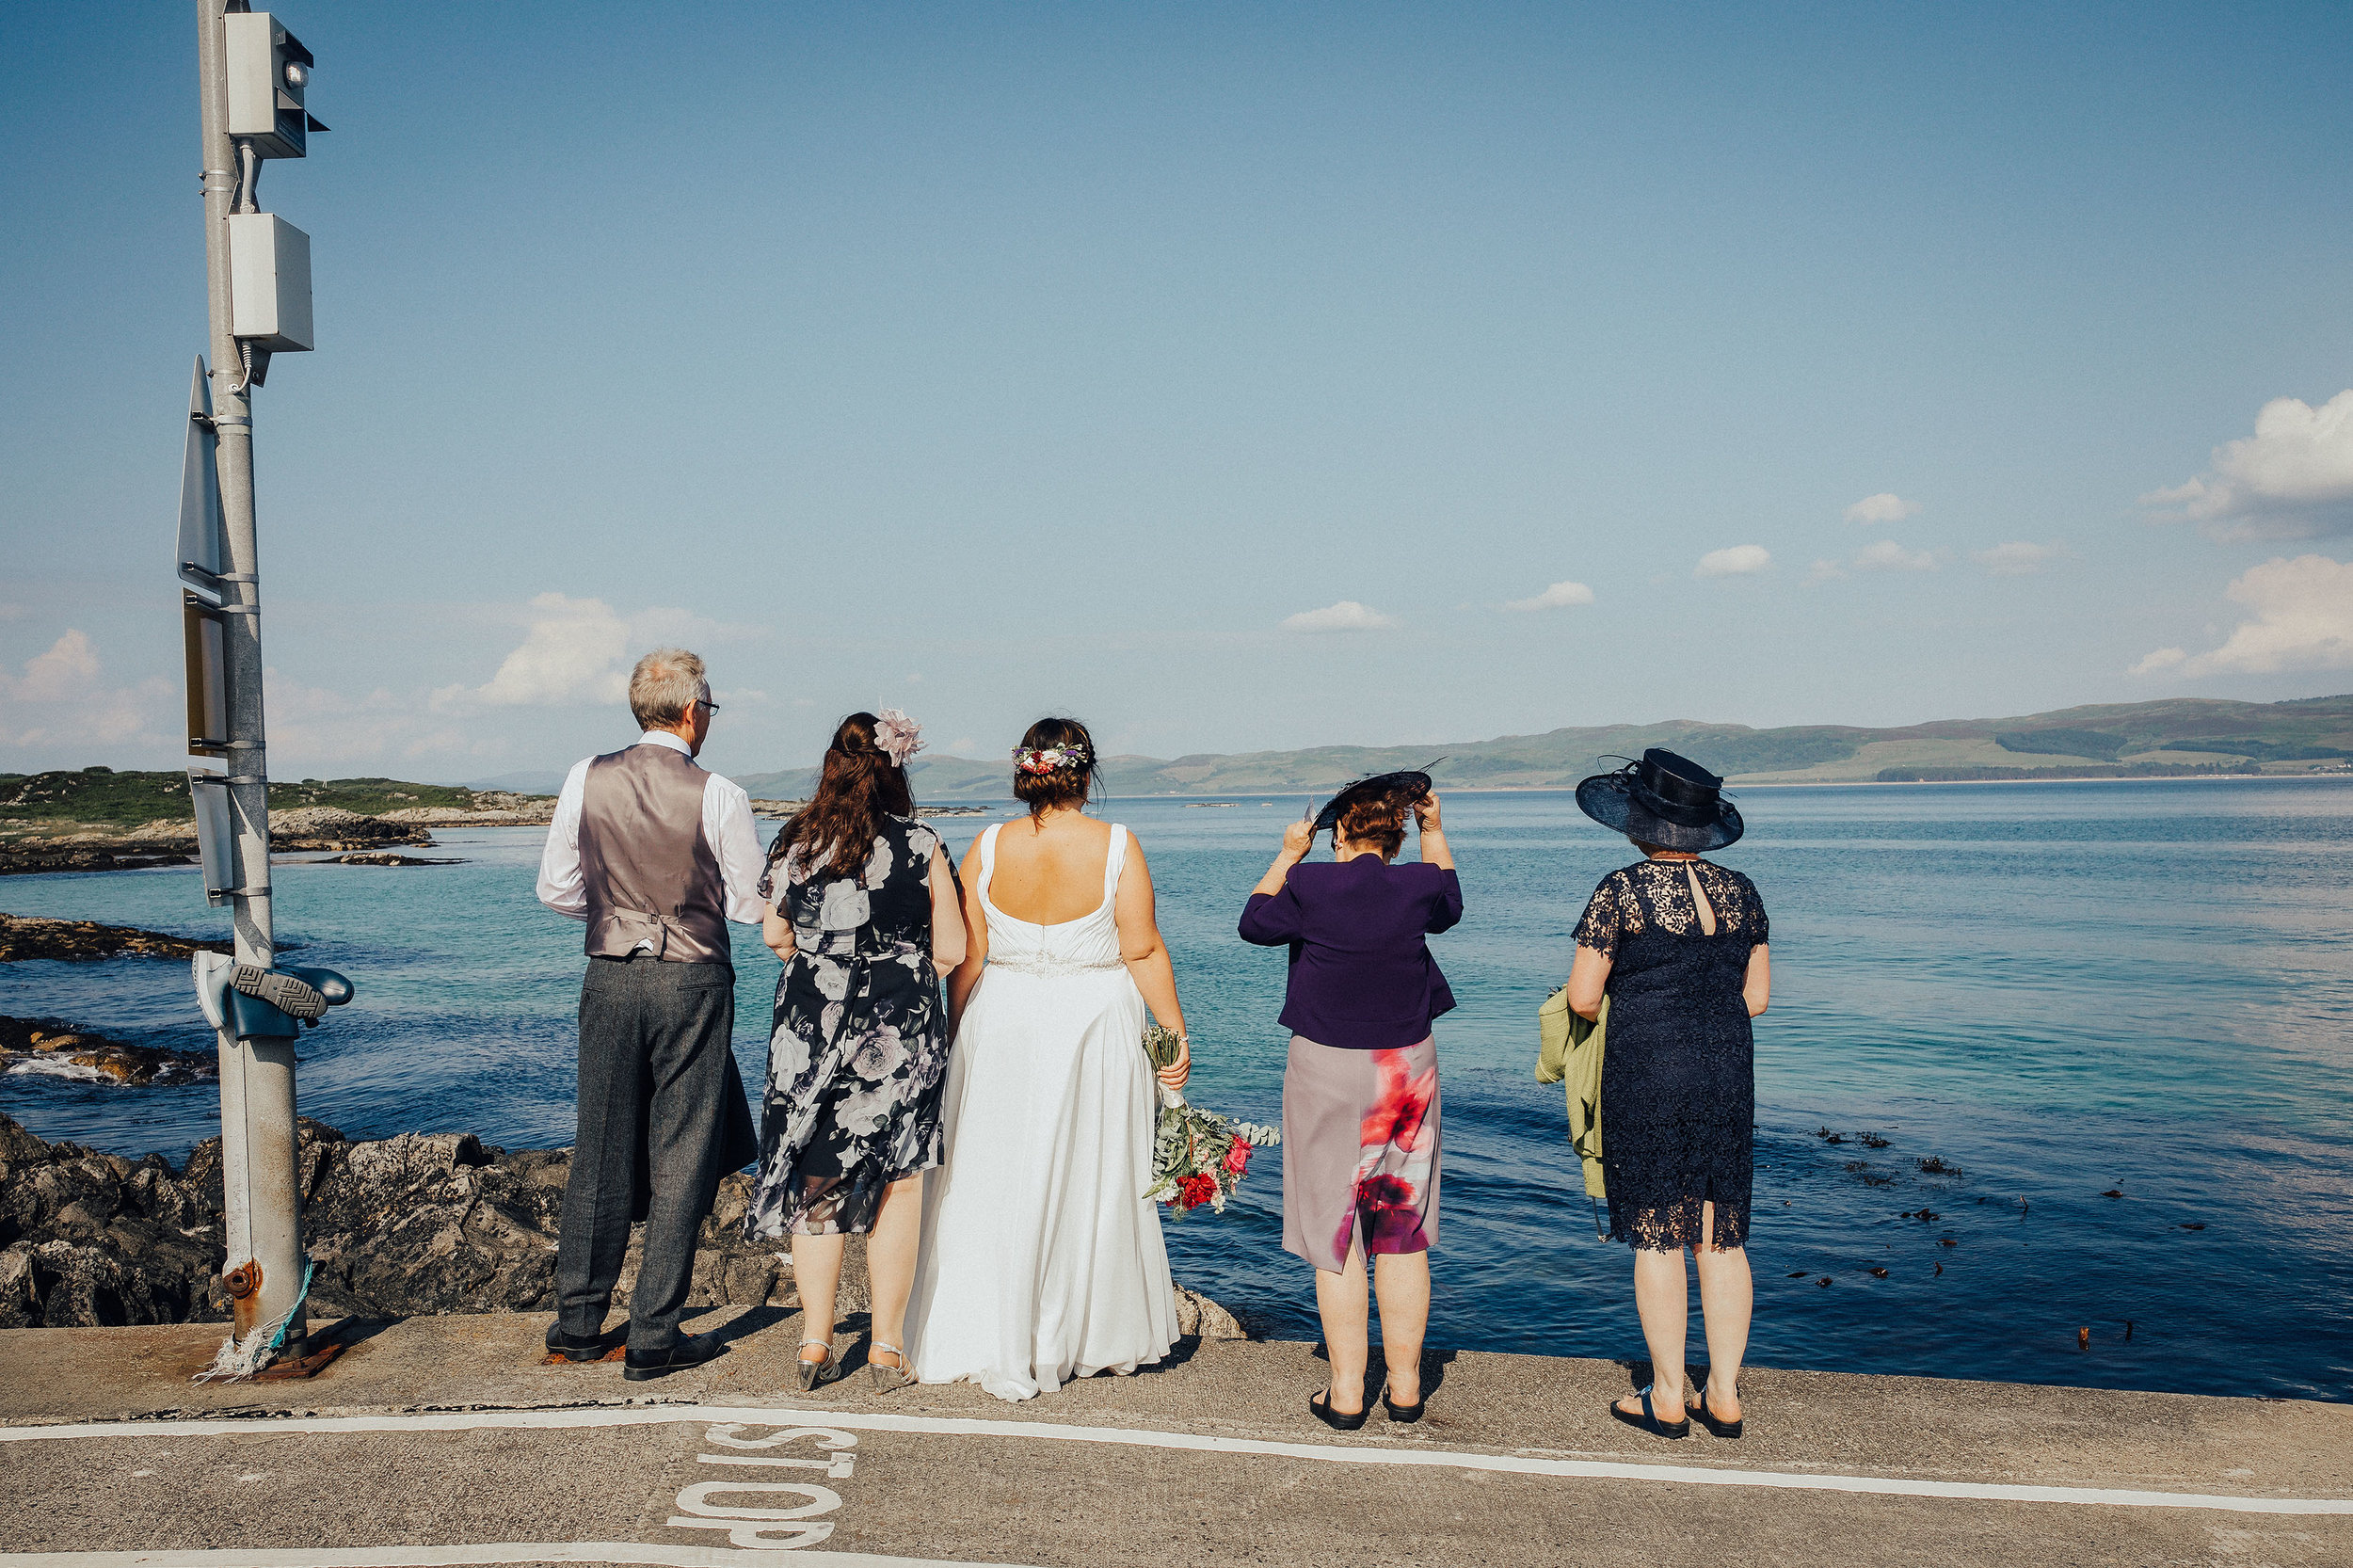 SCOTTISH_ELOPEMENT_PHOTOGRAPHER_PJ_PHILLIPS_PHOTOGRAPHY_140.jpg